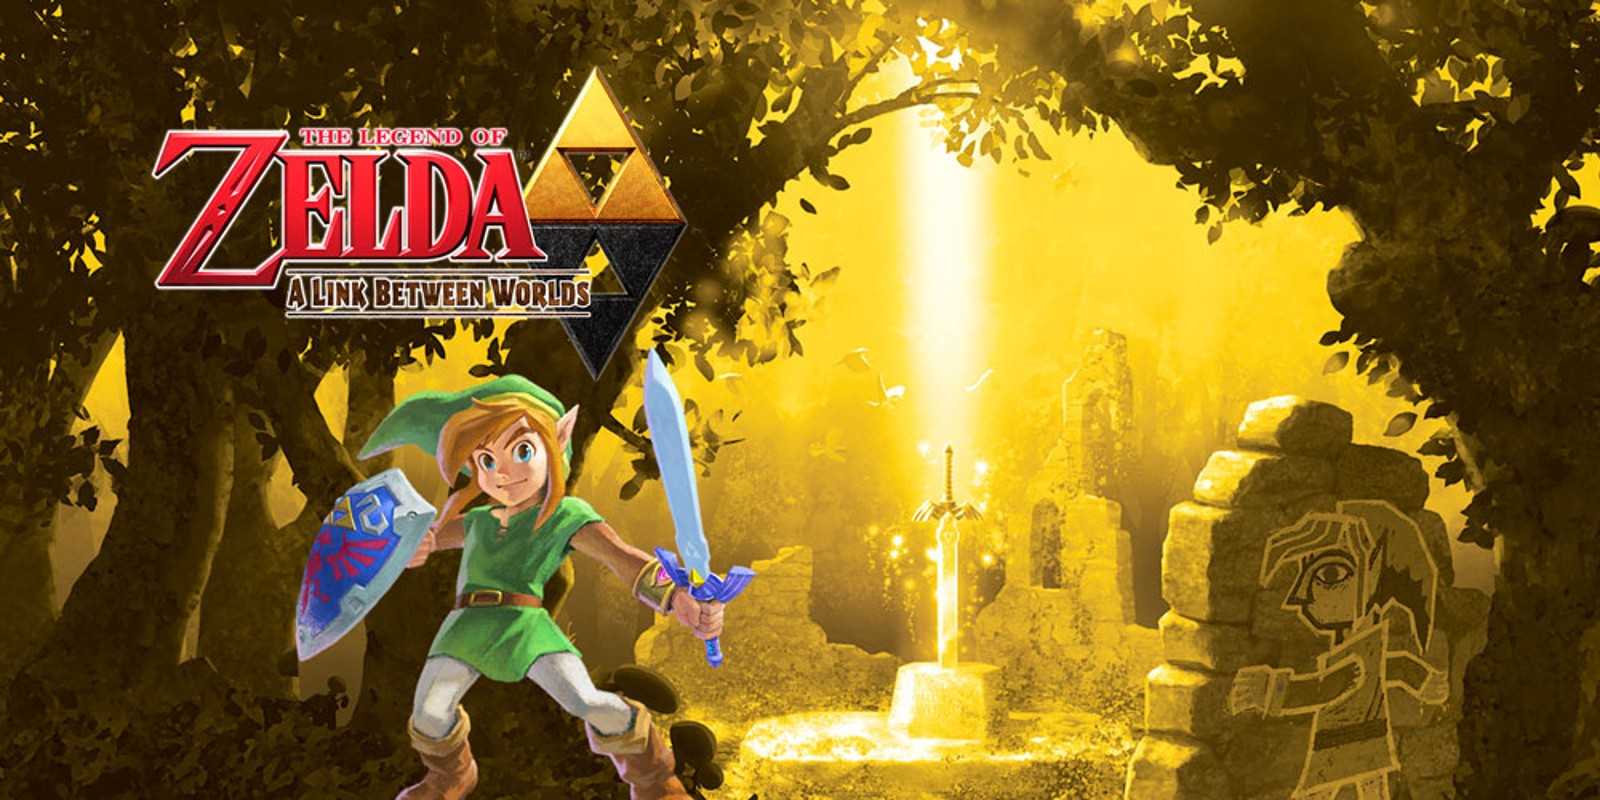 The Legend of Zelda  A Link Between Worlds   Nintendo 3DS   Games     The Legend of Zelda  A Link Between Worlds